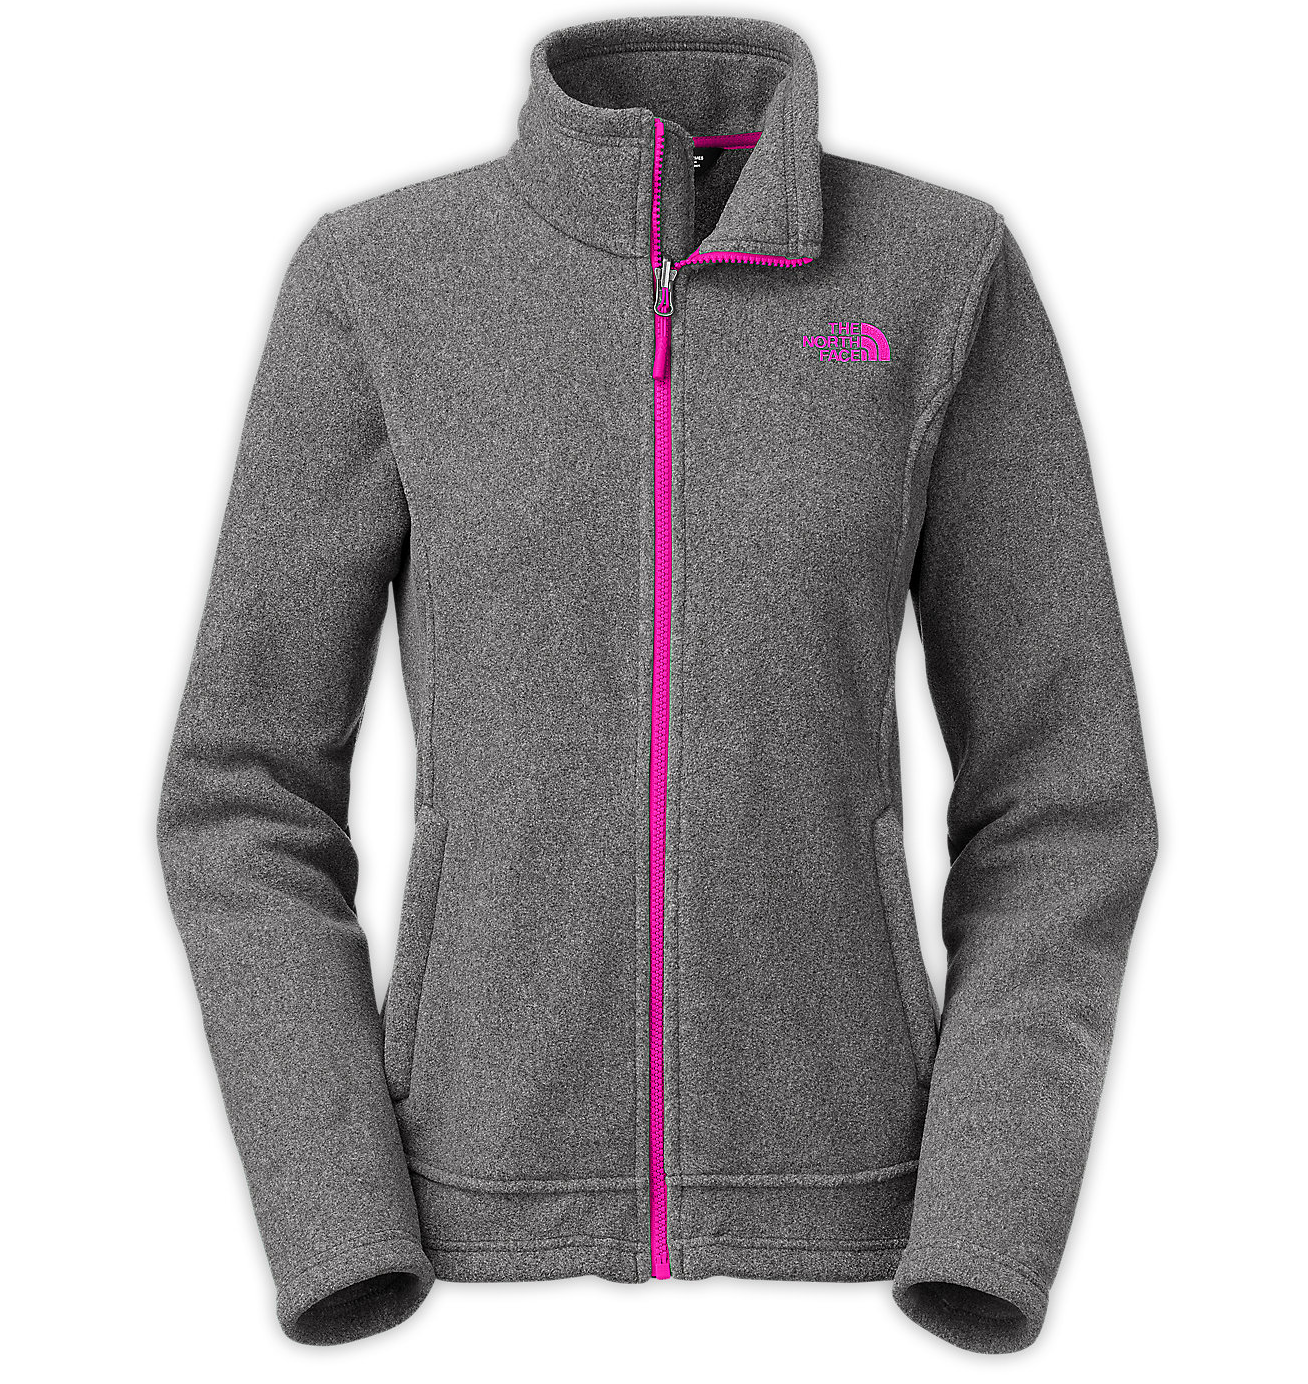 Northface Fleece: Finding the Perfect Fall Fleece is Key!